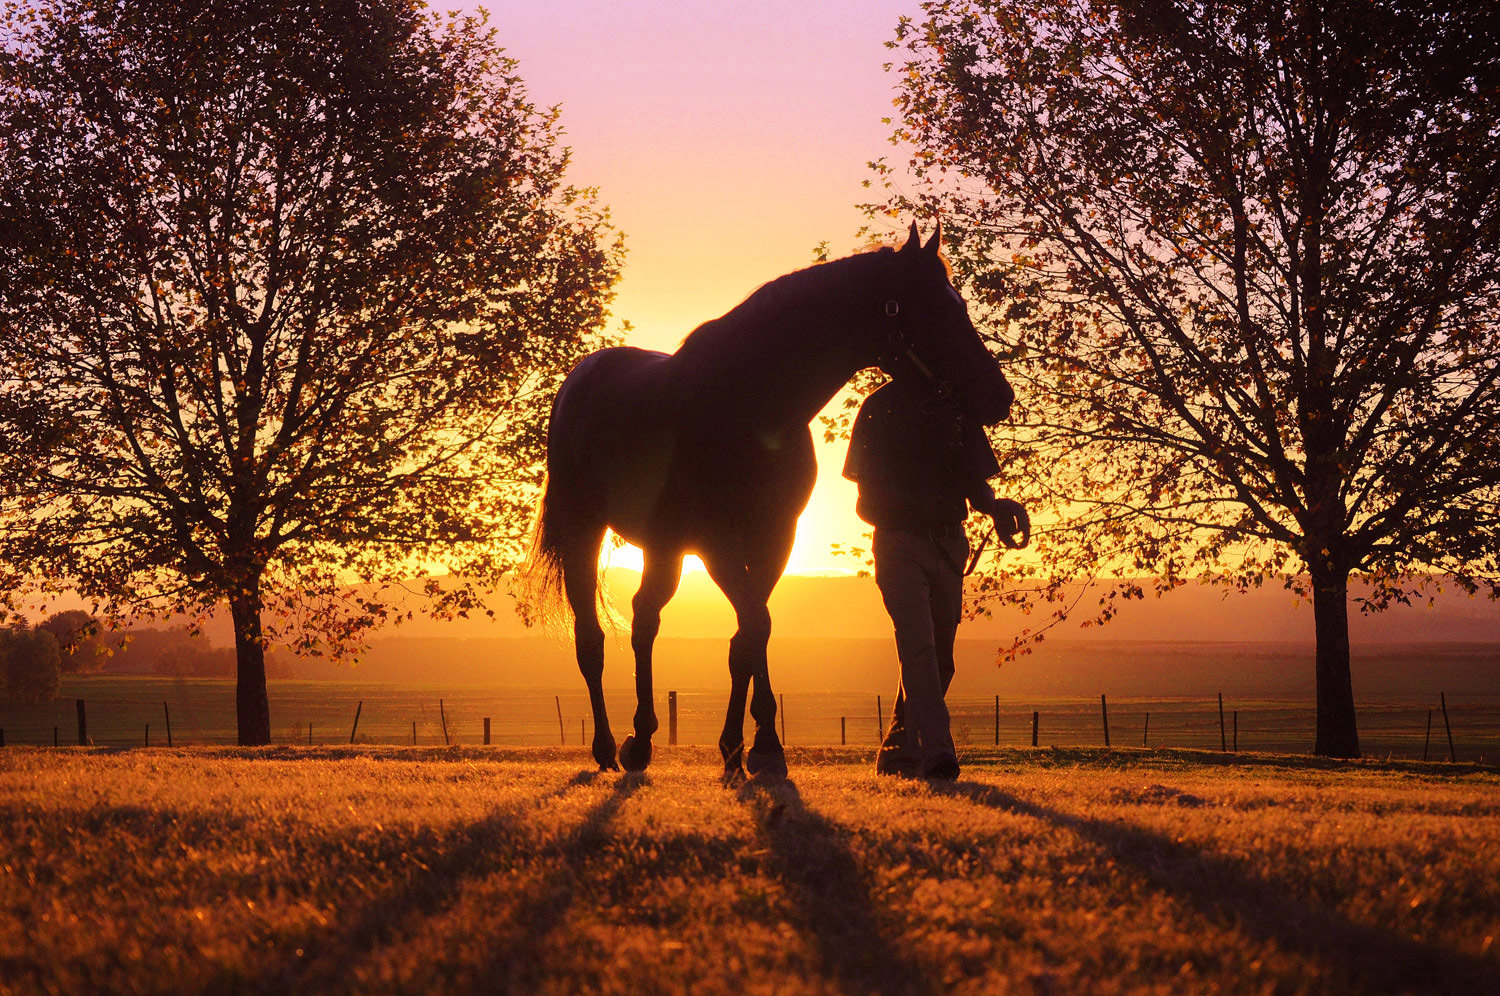 Thoroughbred Stallion at sunset at Summerhill Stud, South Africa / Greig Muir (p)